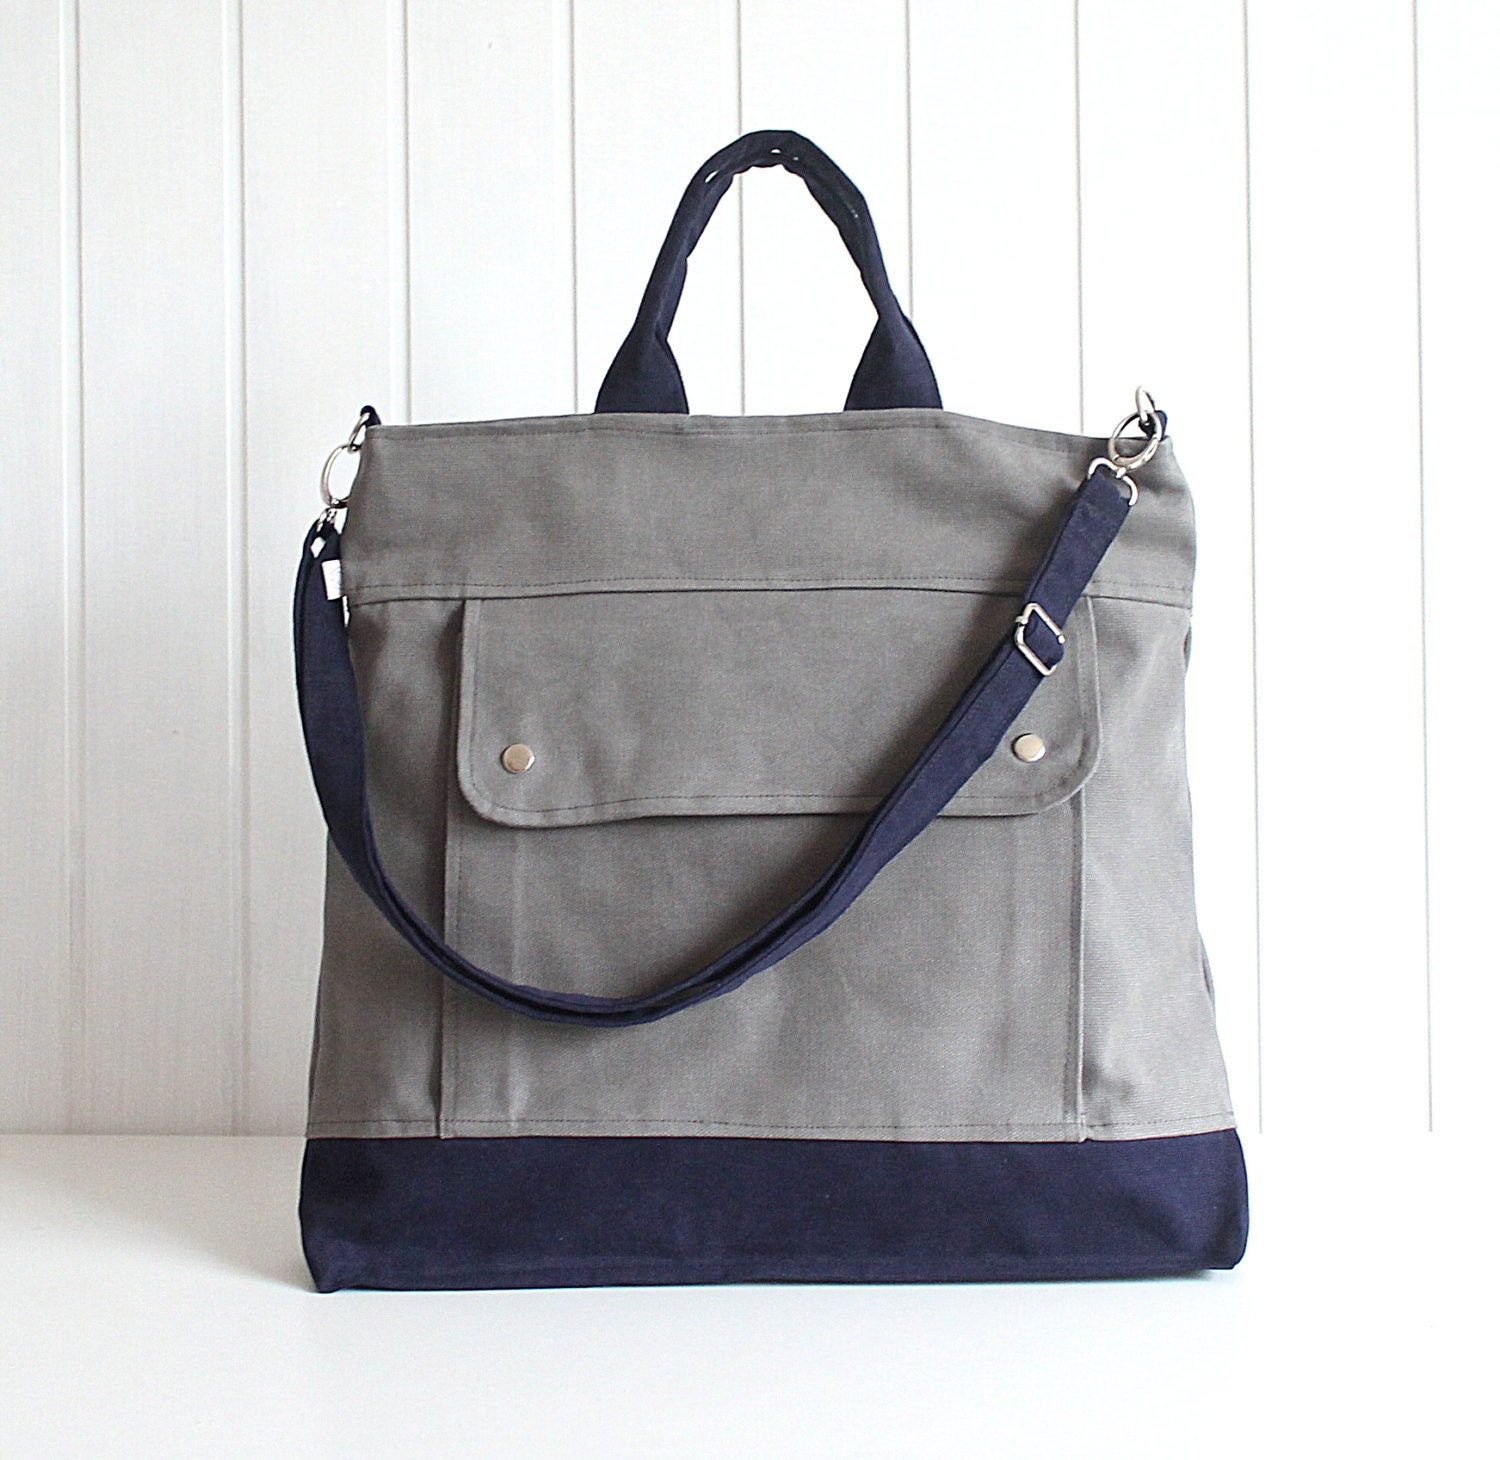 Men - Project Messenger Bag in Olive Grey with dark Navy - UNISEX BAG / Tote Bag / For her / For men / For women / For him / under 50 - bayanhippo